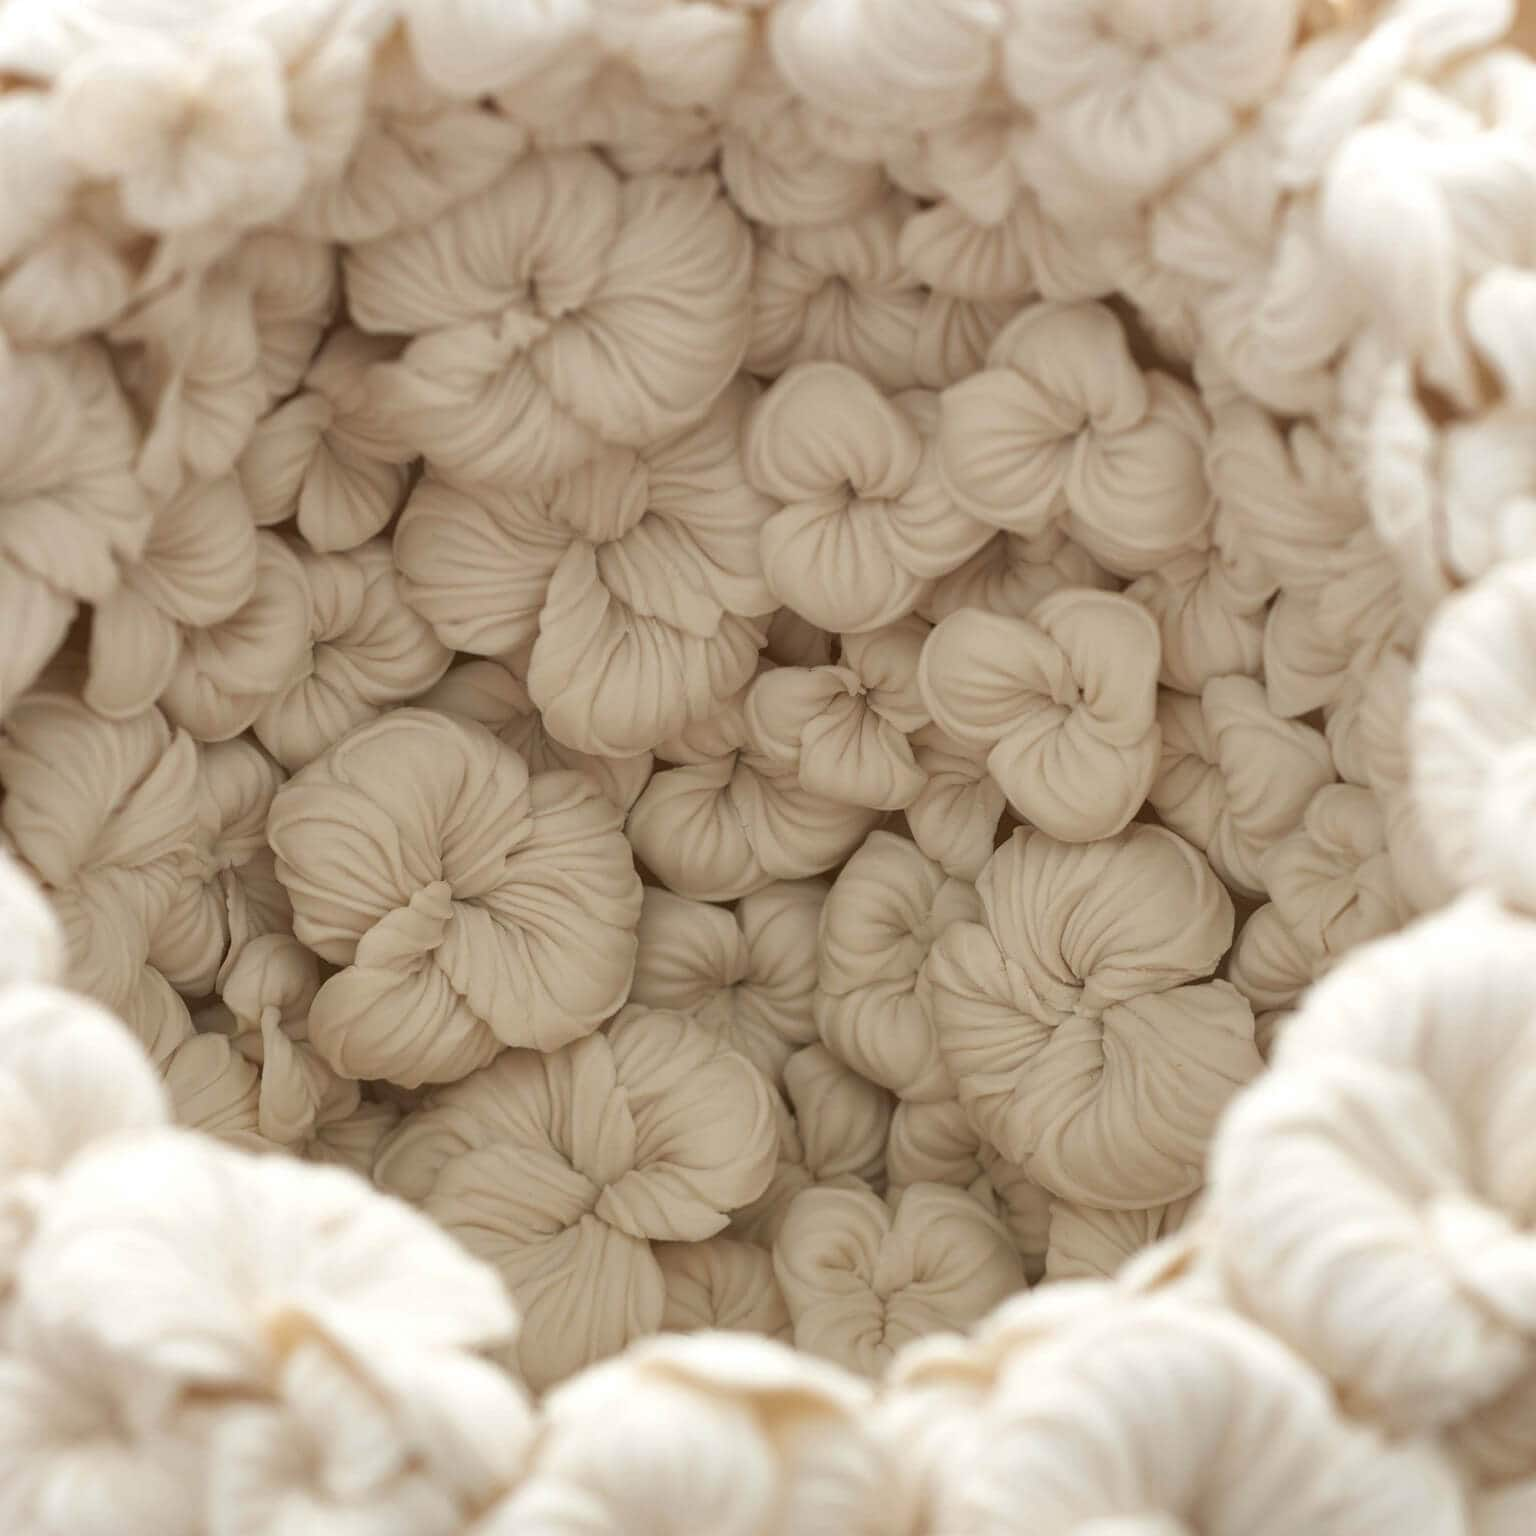 Porcelain Sculptures Closely Layered in Botanical Patterns by Hitomi Hosono -sculptures, gohome, clay sculptures, ceramics, ceramic